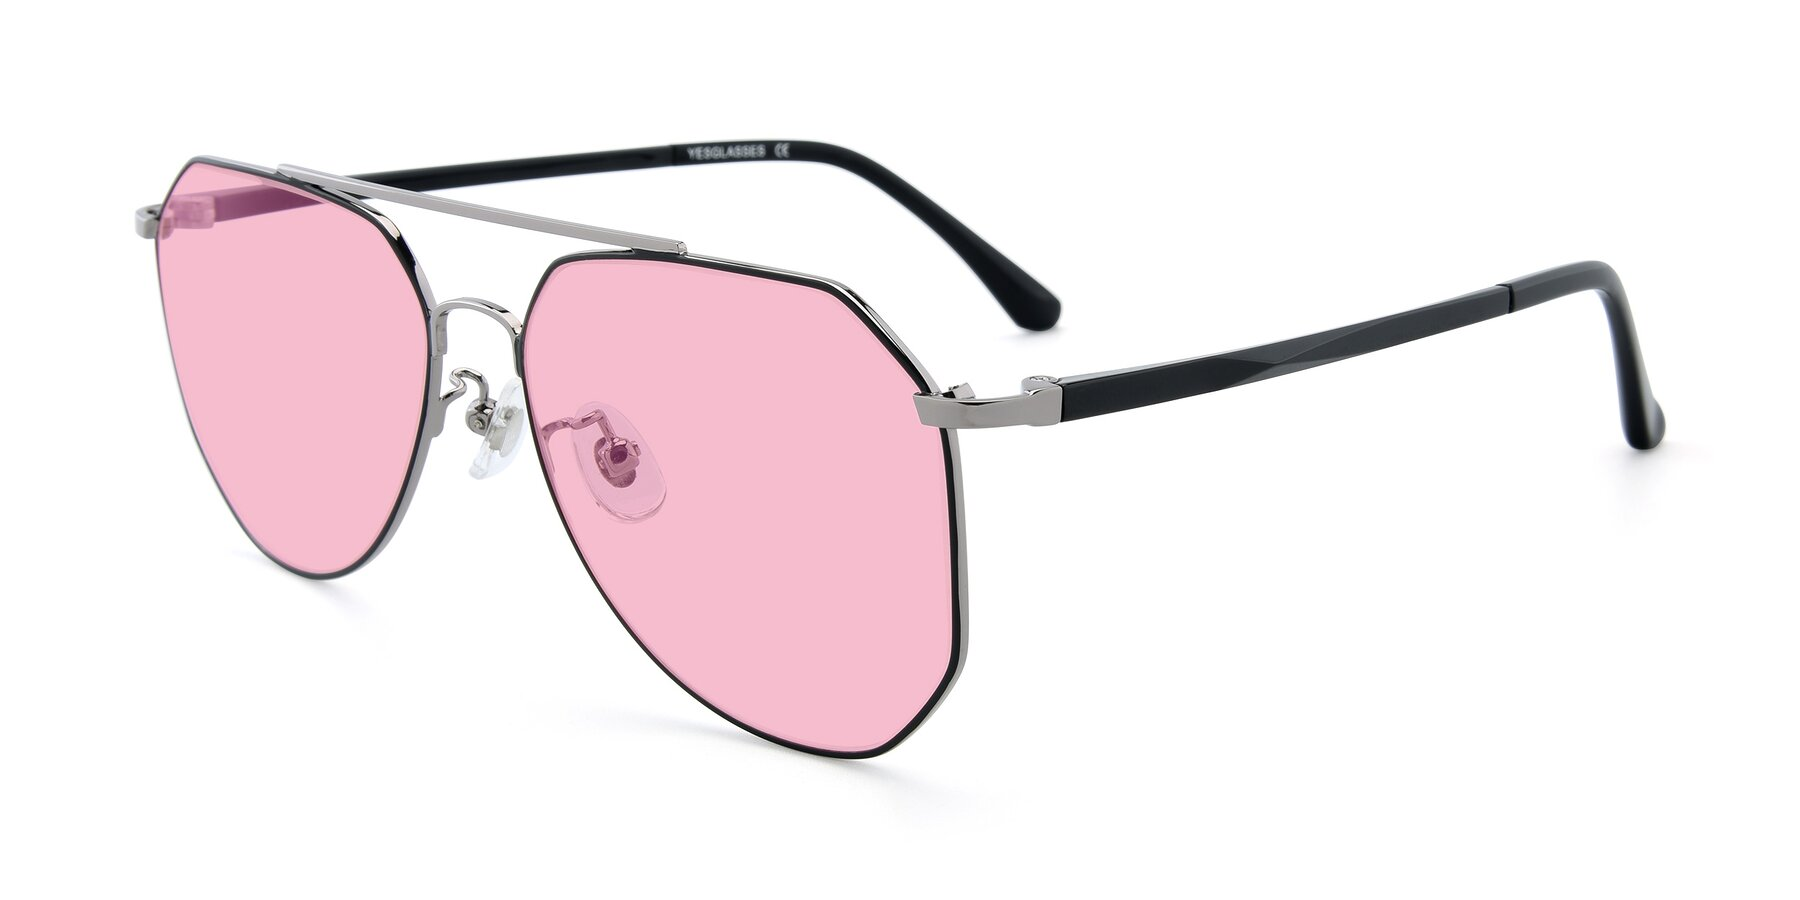 Angle of XC-8040 in Black/ Gun with Medium Pink Tinted Lenses